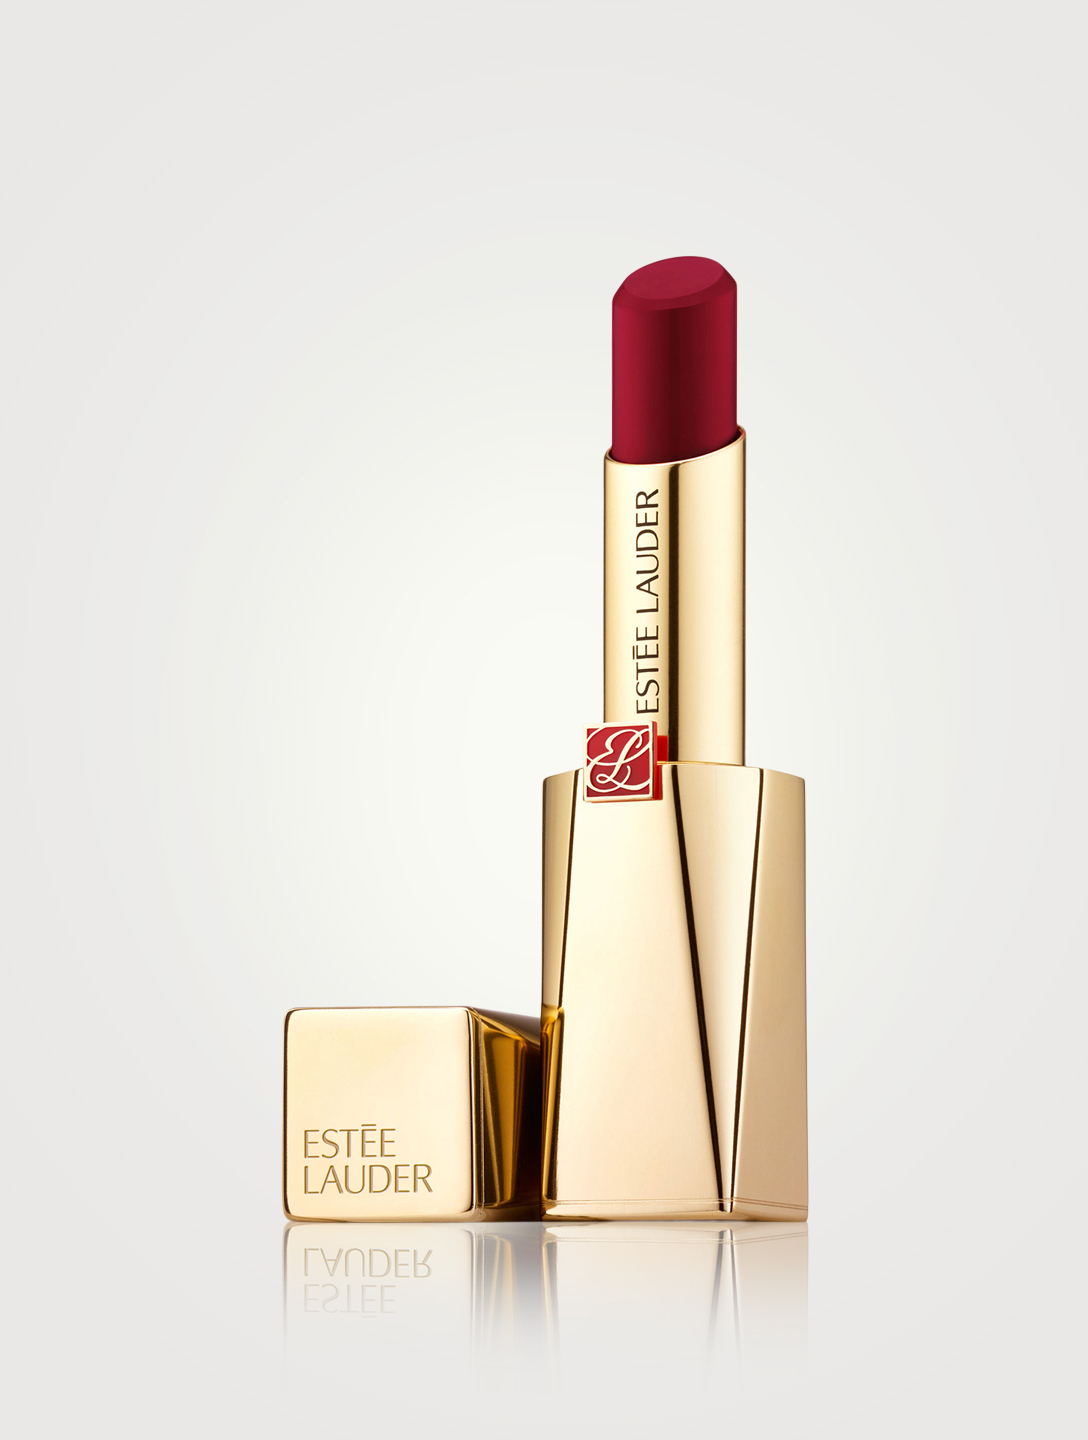 ESTÉE LAUDER Pure Colour Desire Rouge Excess Lipstick Beauty Red